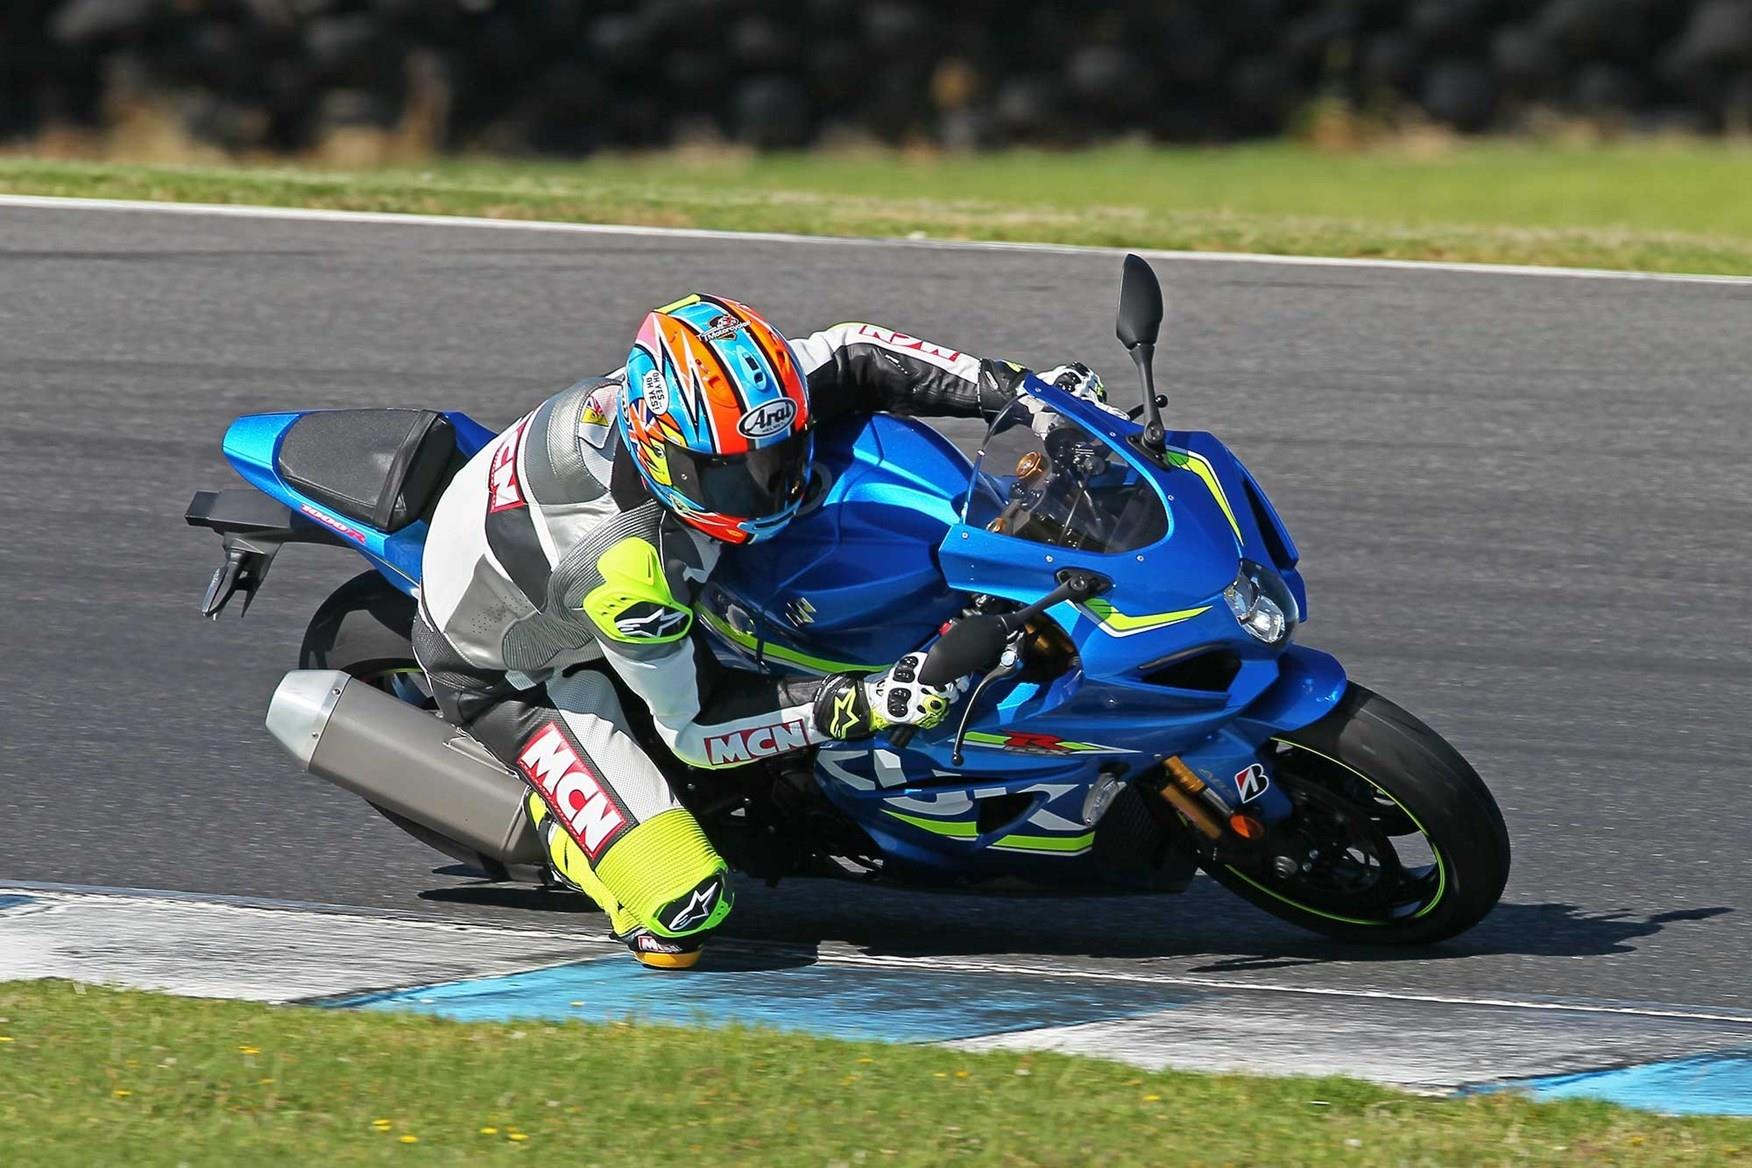 MCN's Neeves in action on the Suzuki GSX-R1000R